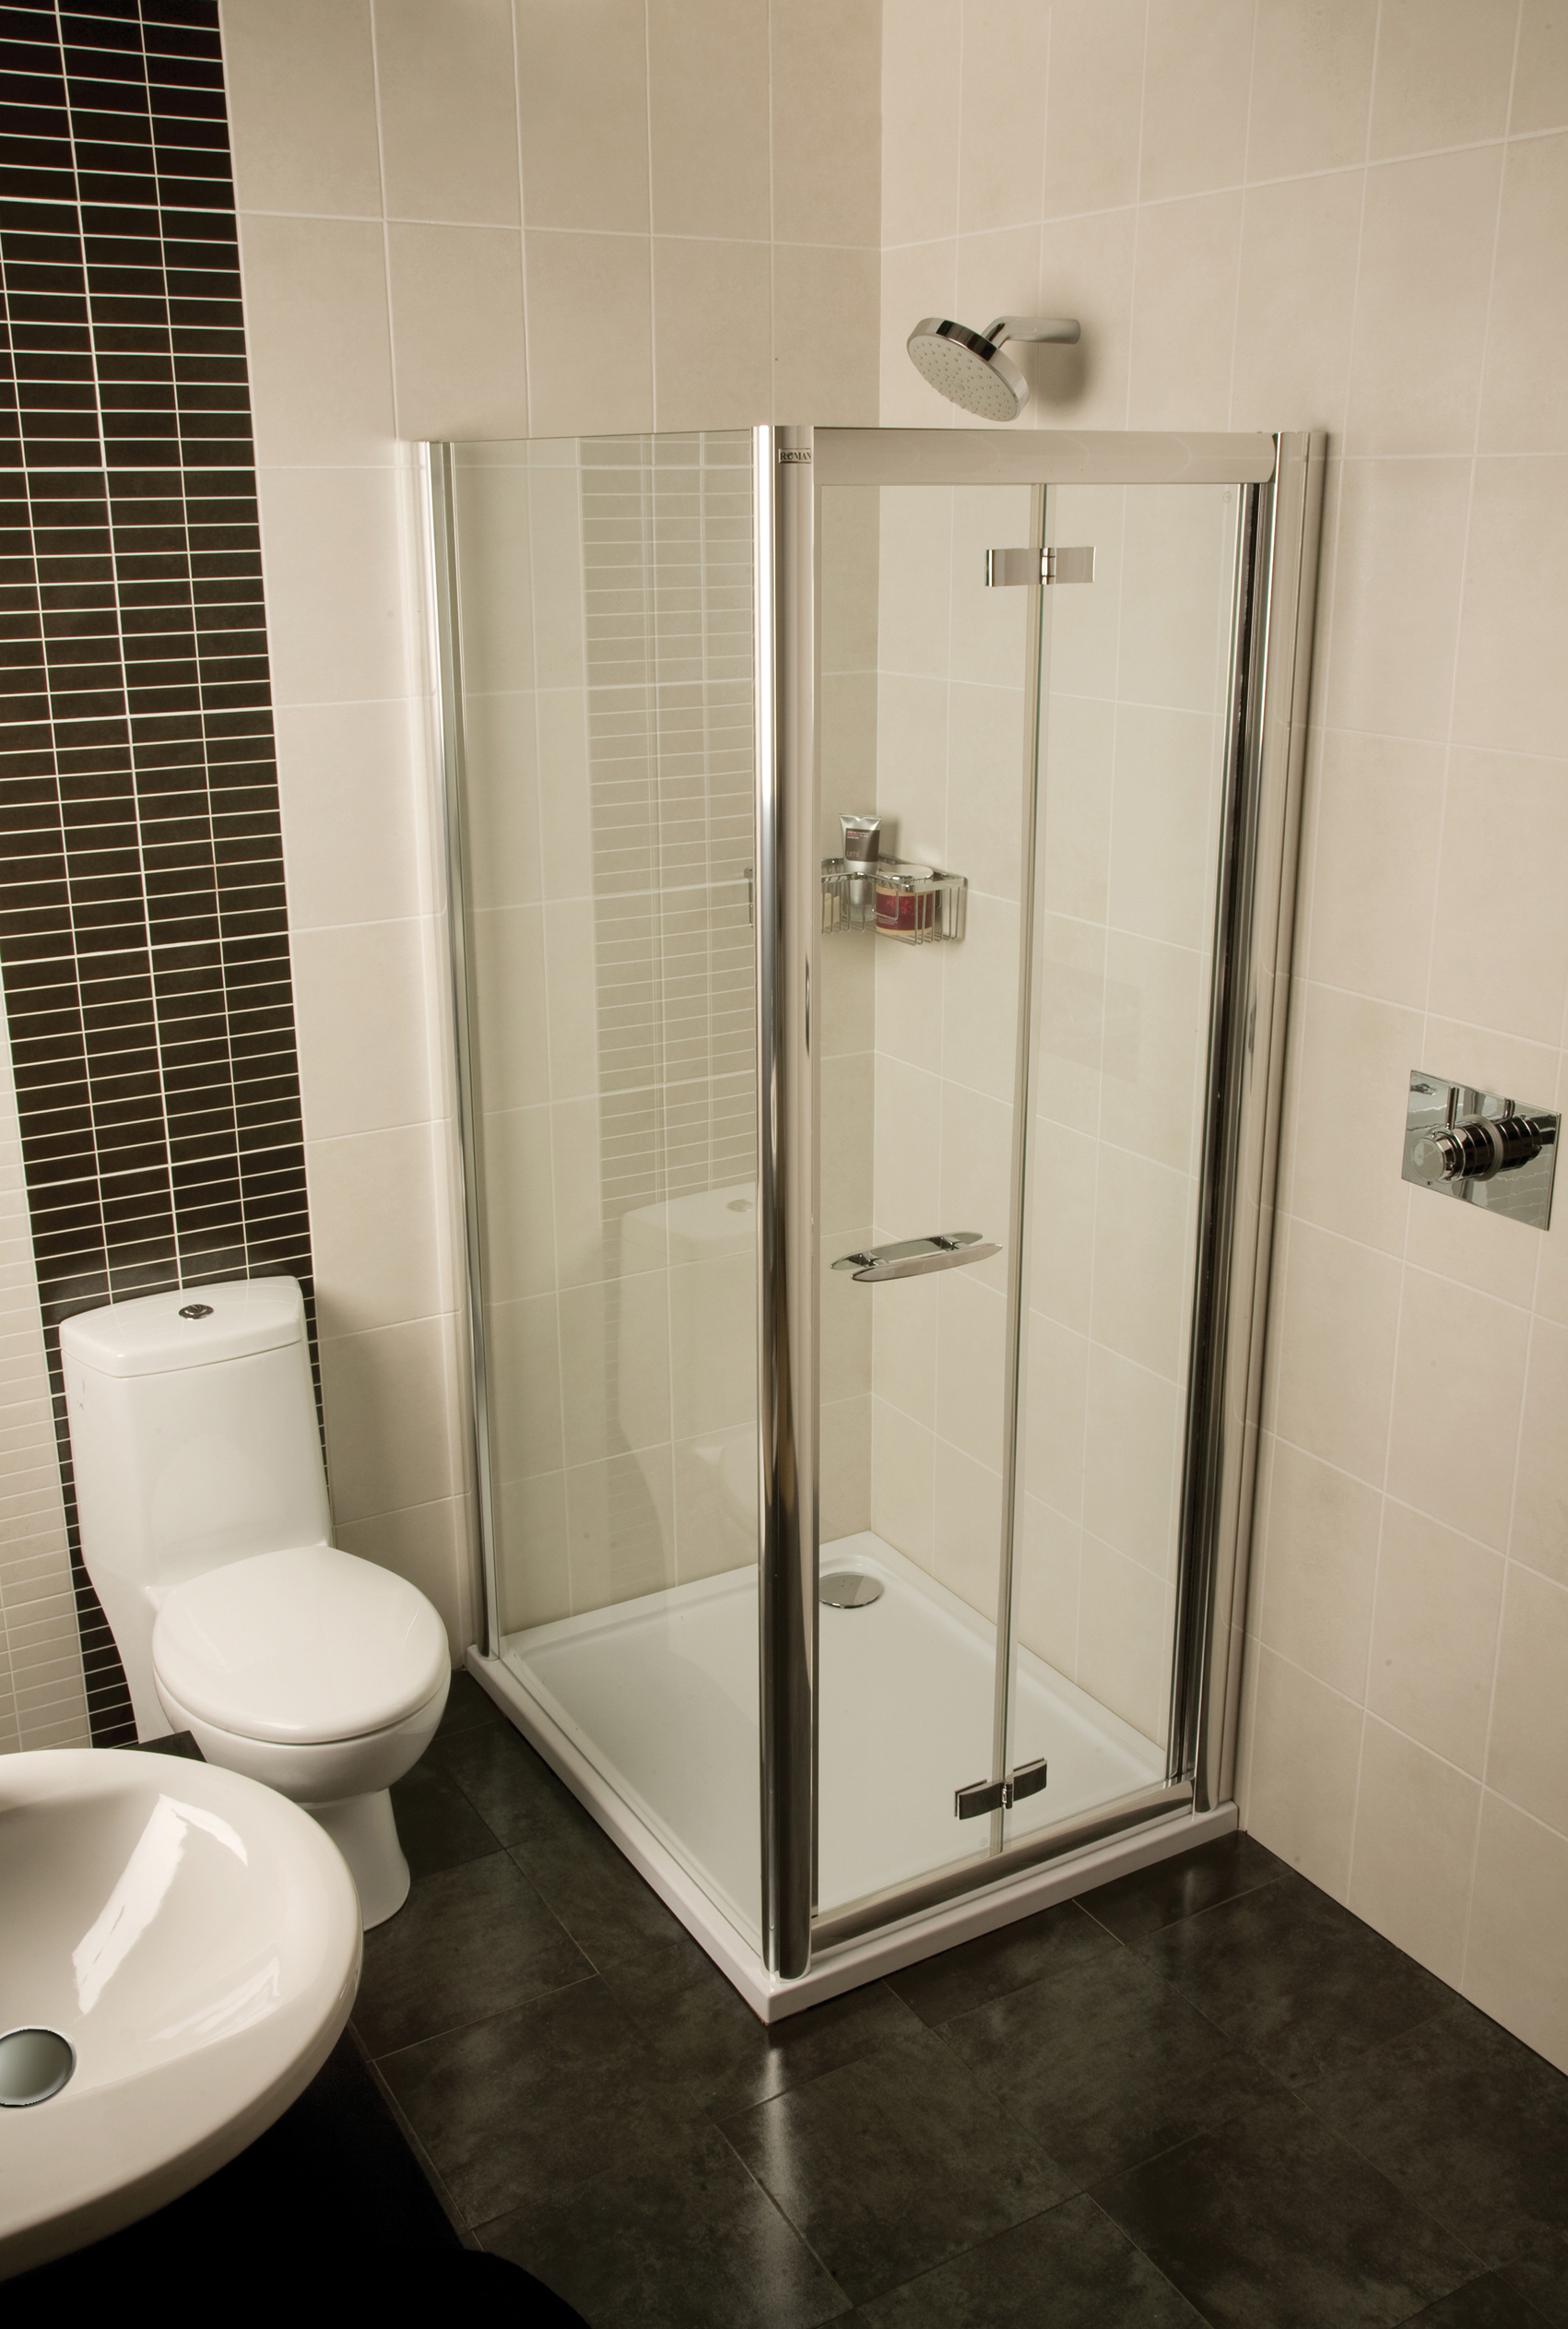 Space Saving Shower Solutions For Small Bathroom Roman Showers Blog - Space saving ideas for small bathrooms